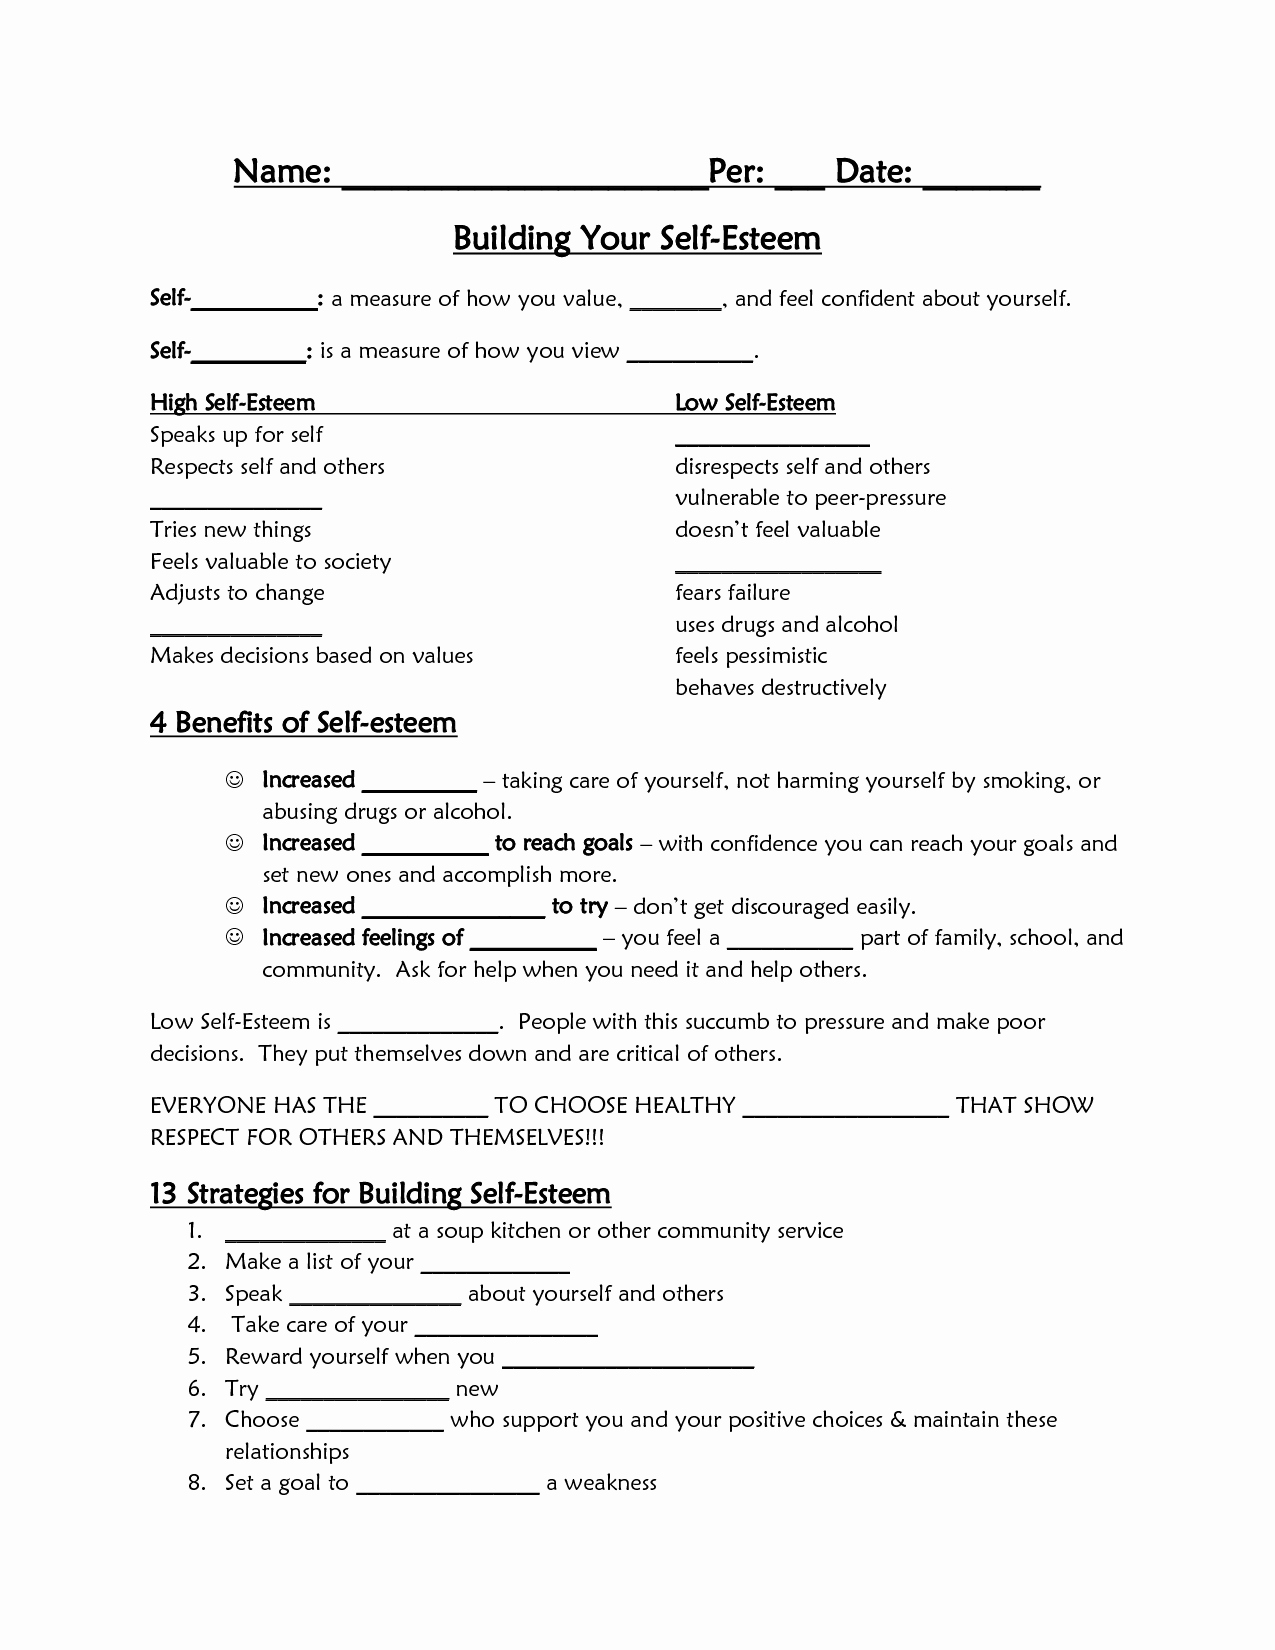 Self Esteem Worksheet for Teens Fresh Self Esteem Worksheets for Teens Porn 3gp Online